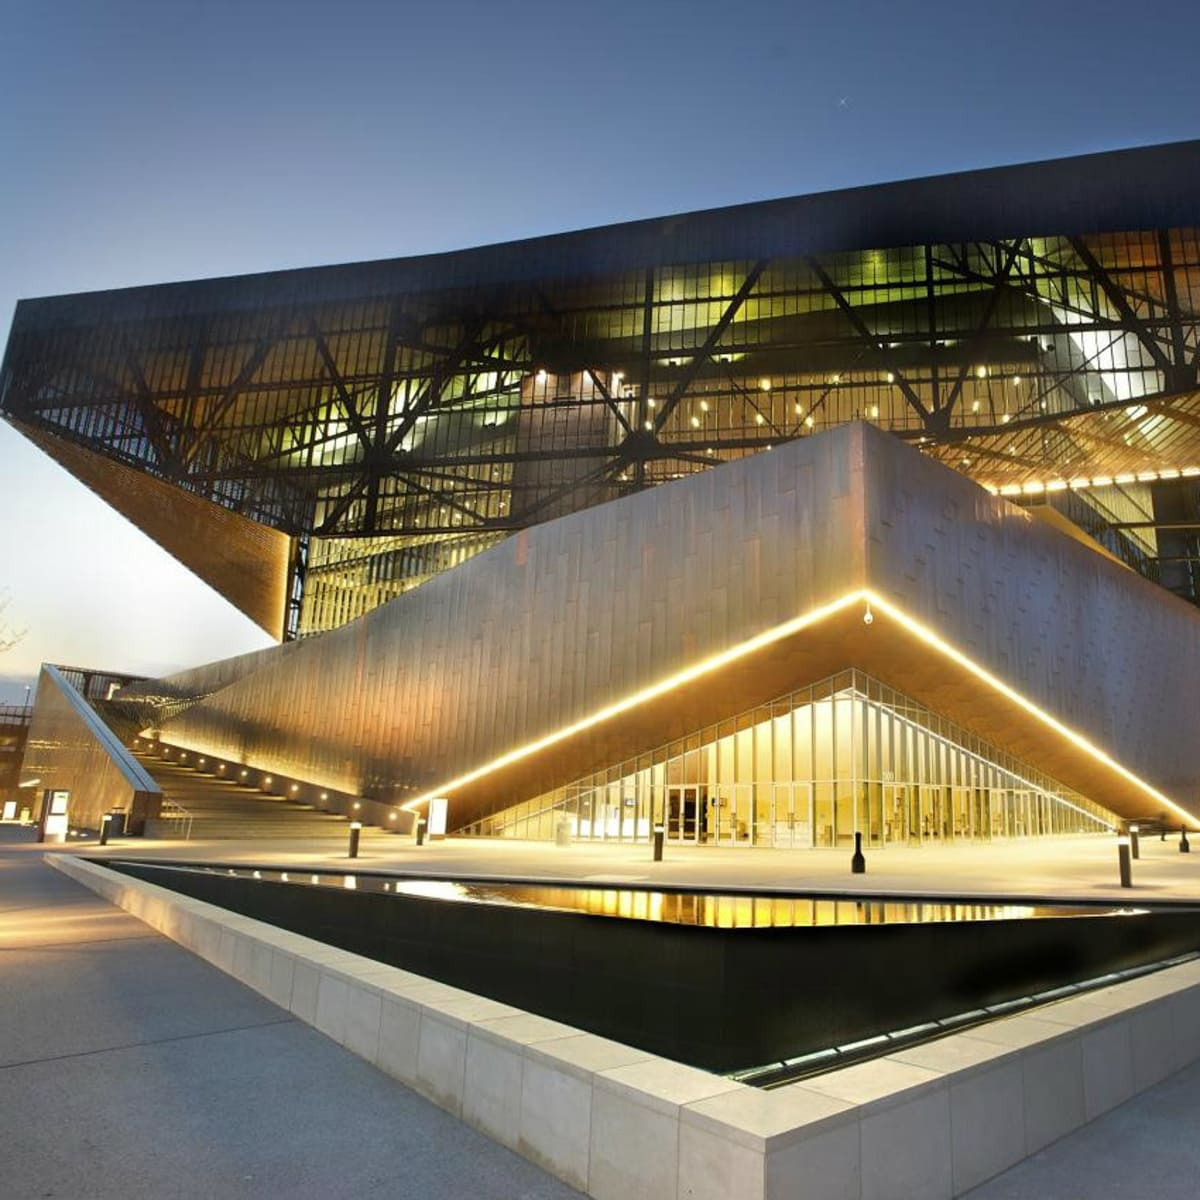 Irving Convention Center at Las Colinas